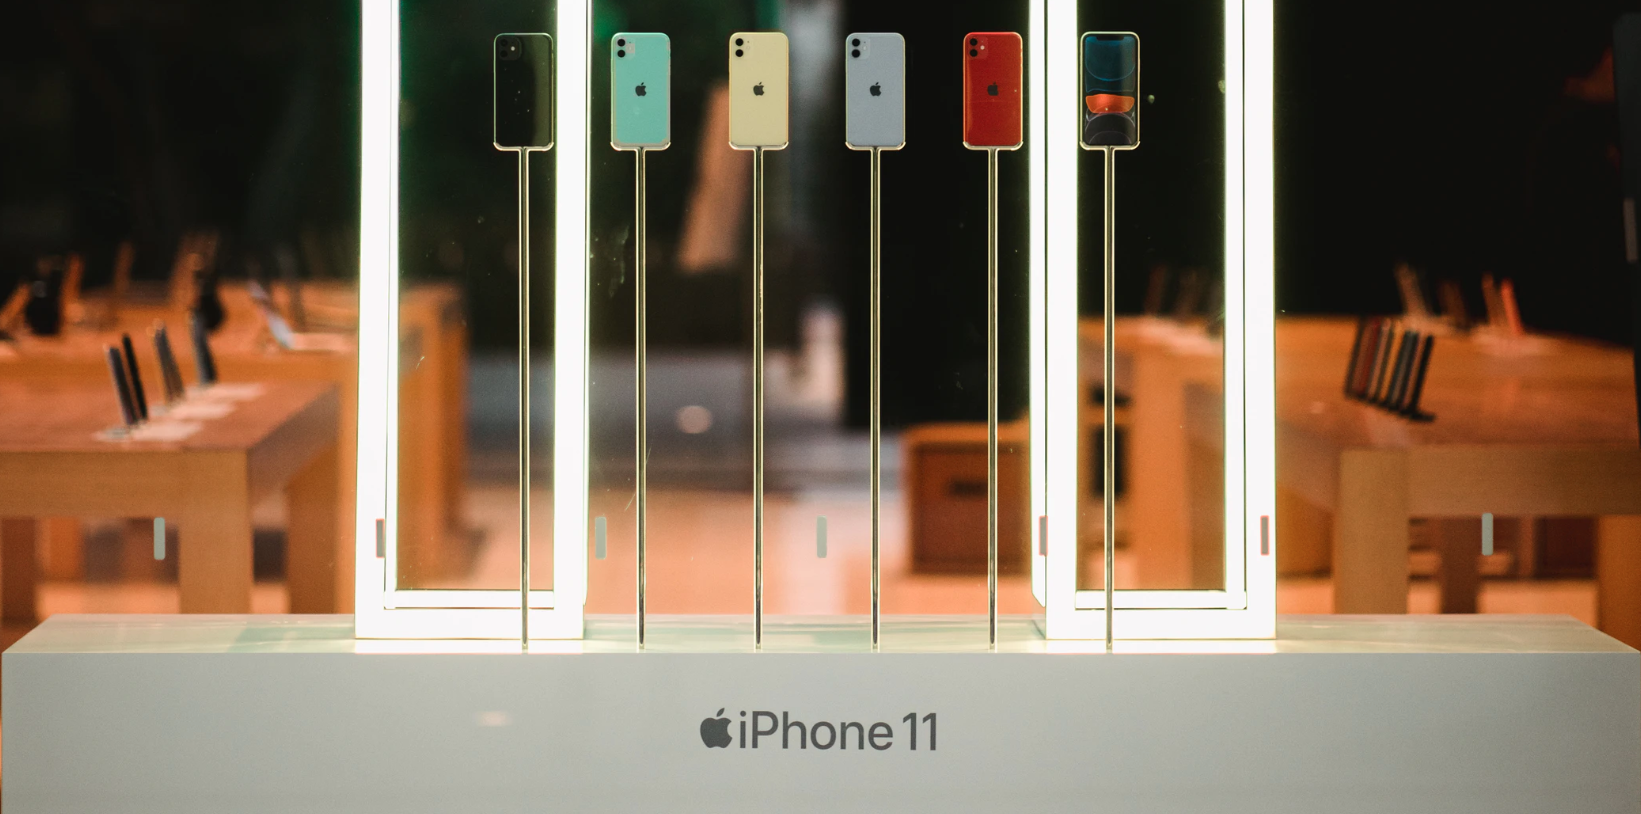 The Great Features of the iPhone 11 will Make You Want One